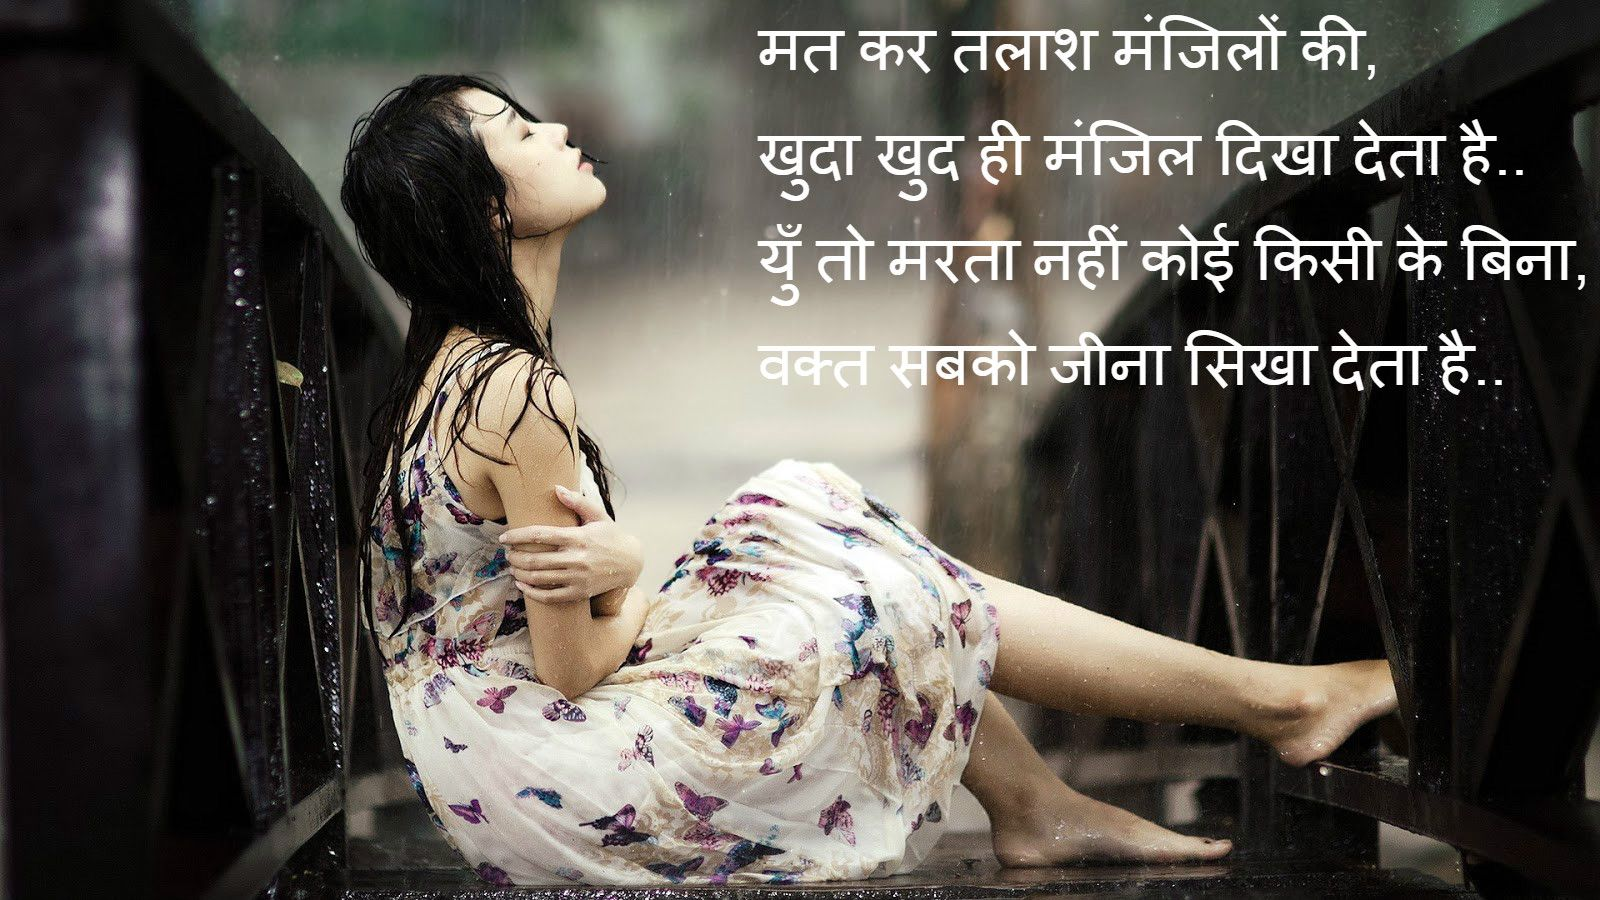 Sad Alone Girl Images With Quotes In Hindi Imaganationfaceorg